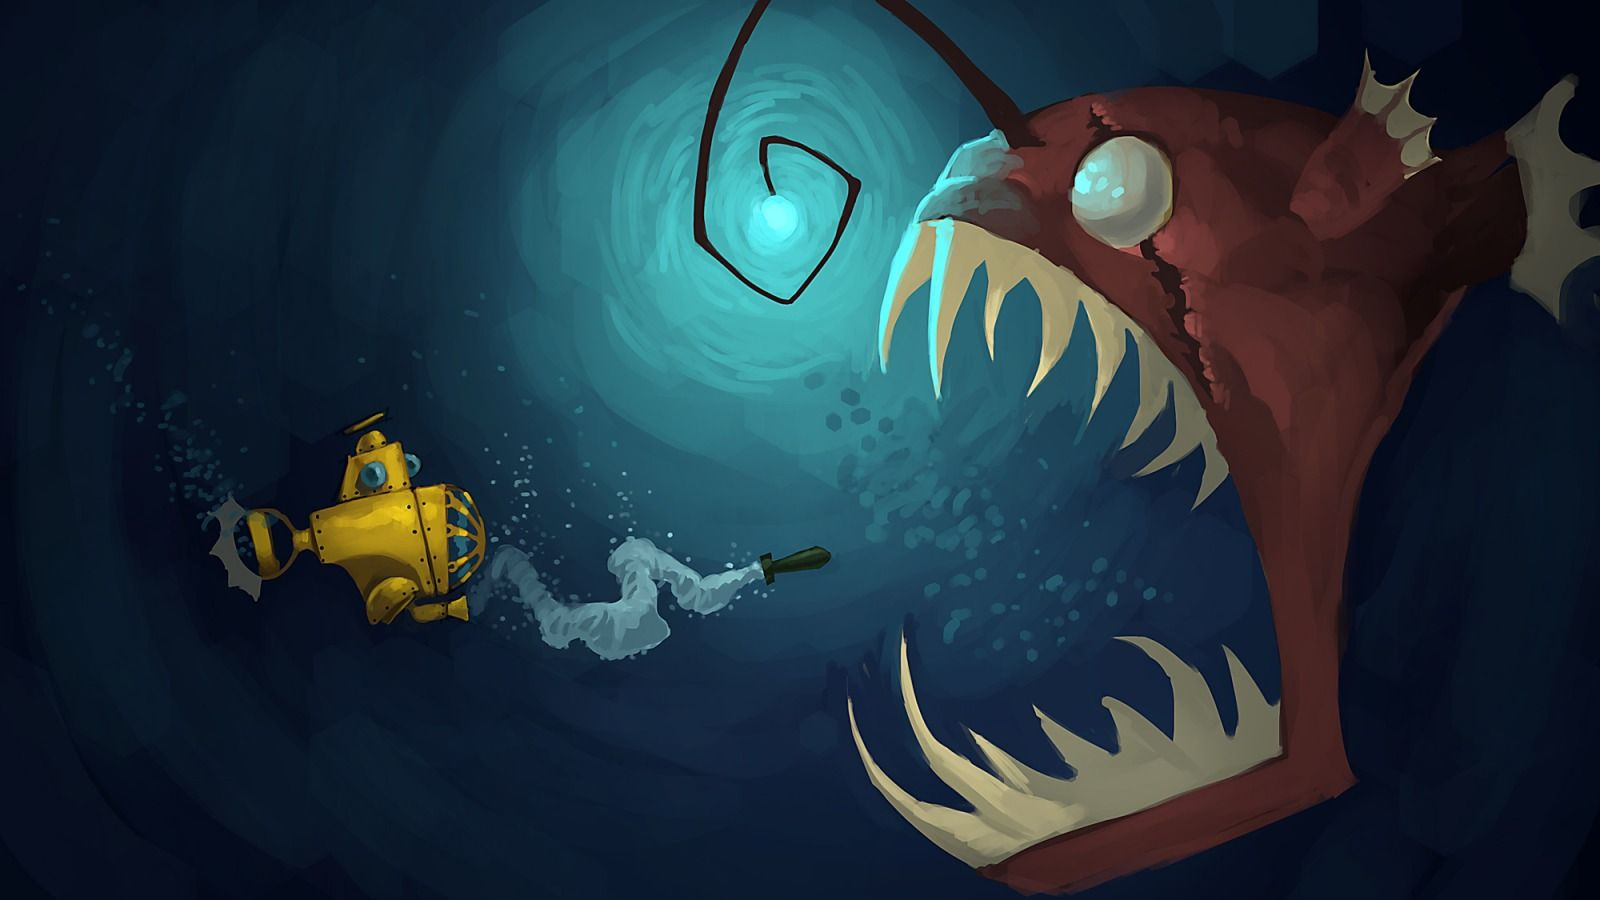 Angler Encounter Picture 2d Illustration Concept Art Fish